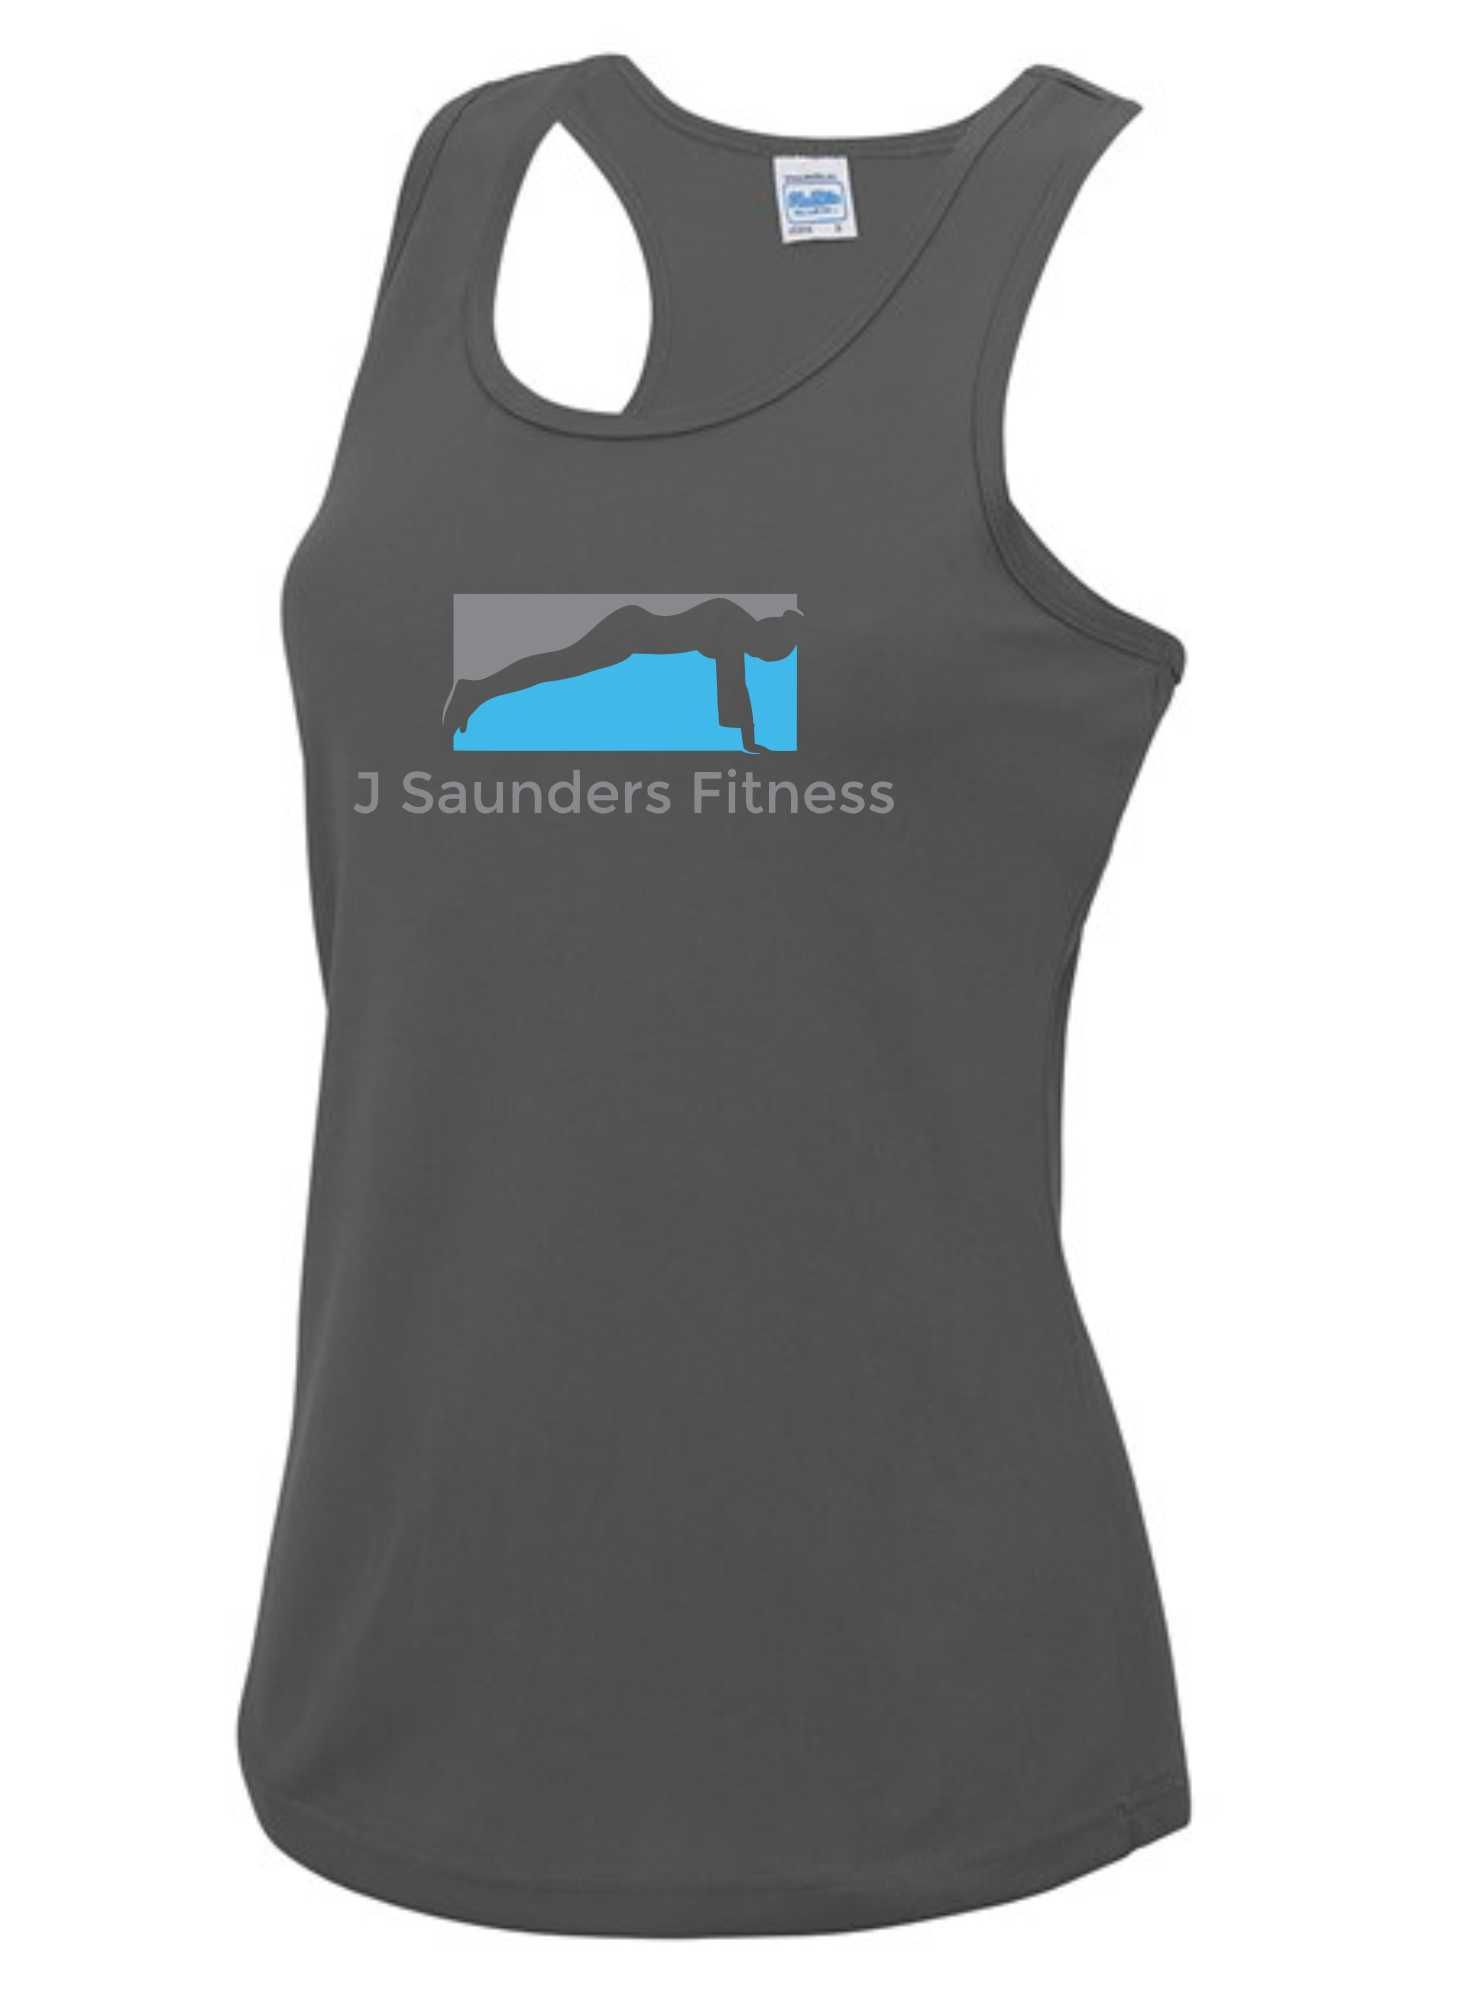 J Saunders Fitness- Ladies Vest (Chest Print)